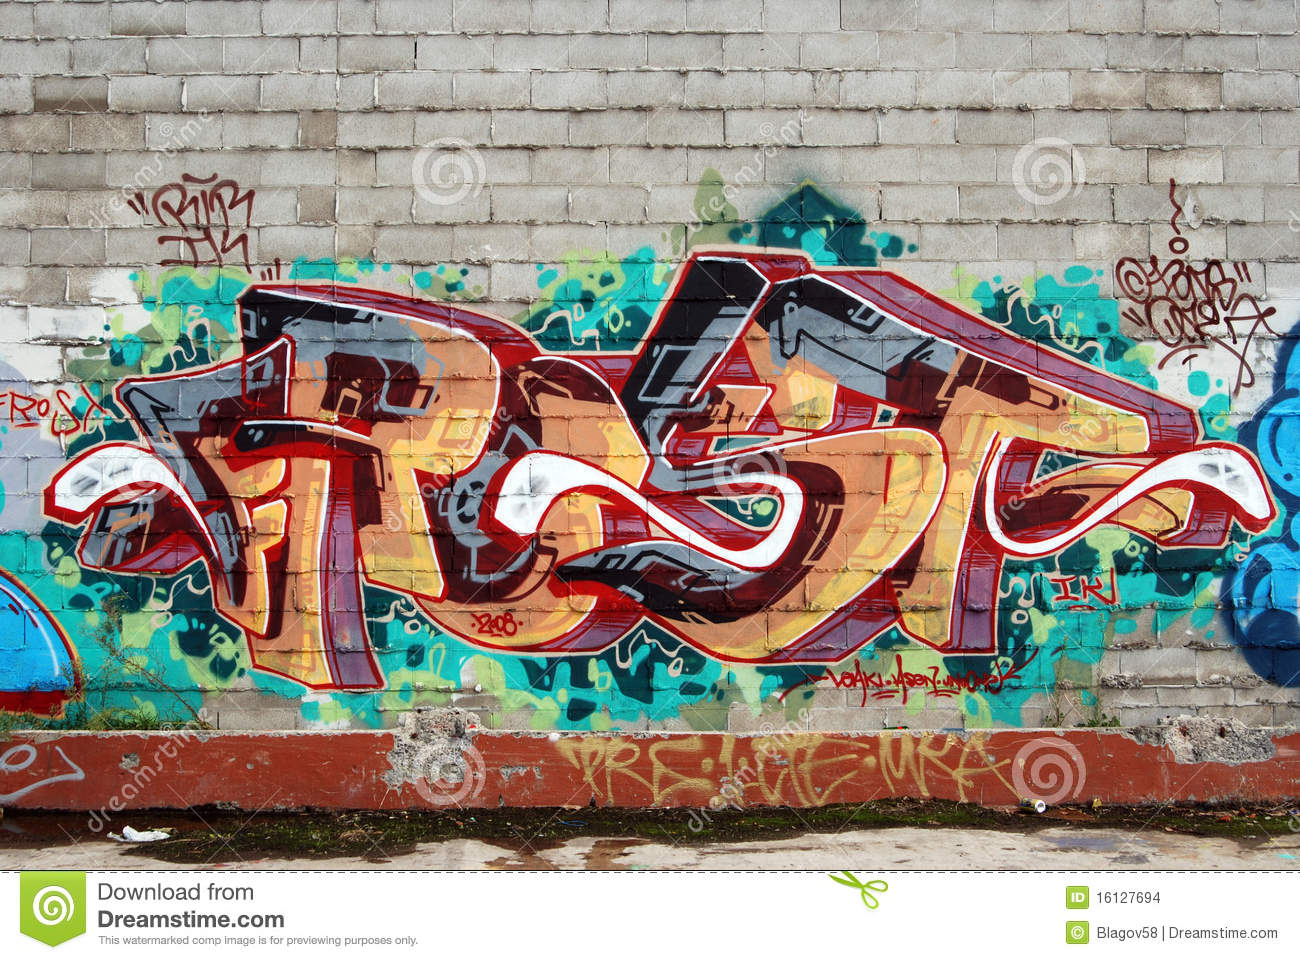 graffiti stock photos images pictures 54 628 images a wall vandalized with street graffiti art stock images